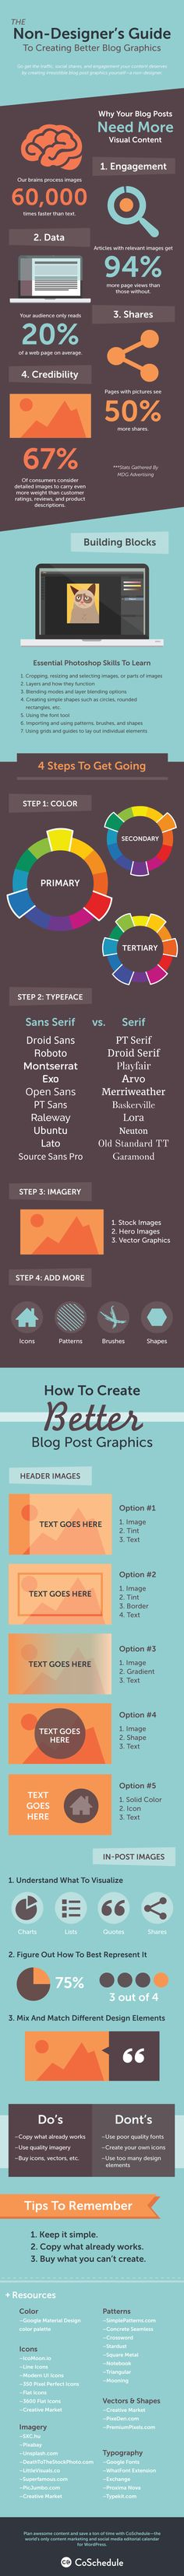 the non-designer's guide to creating blog graphics infographic